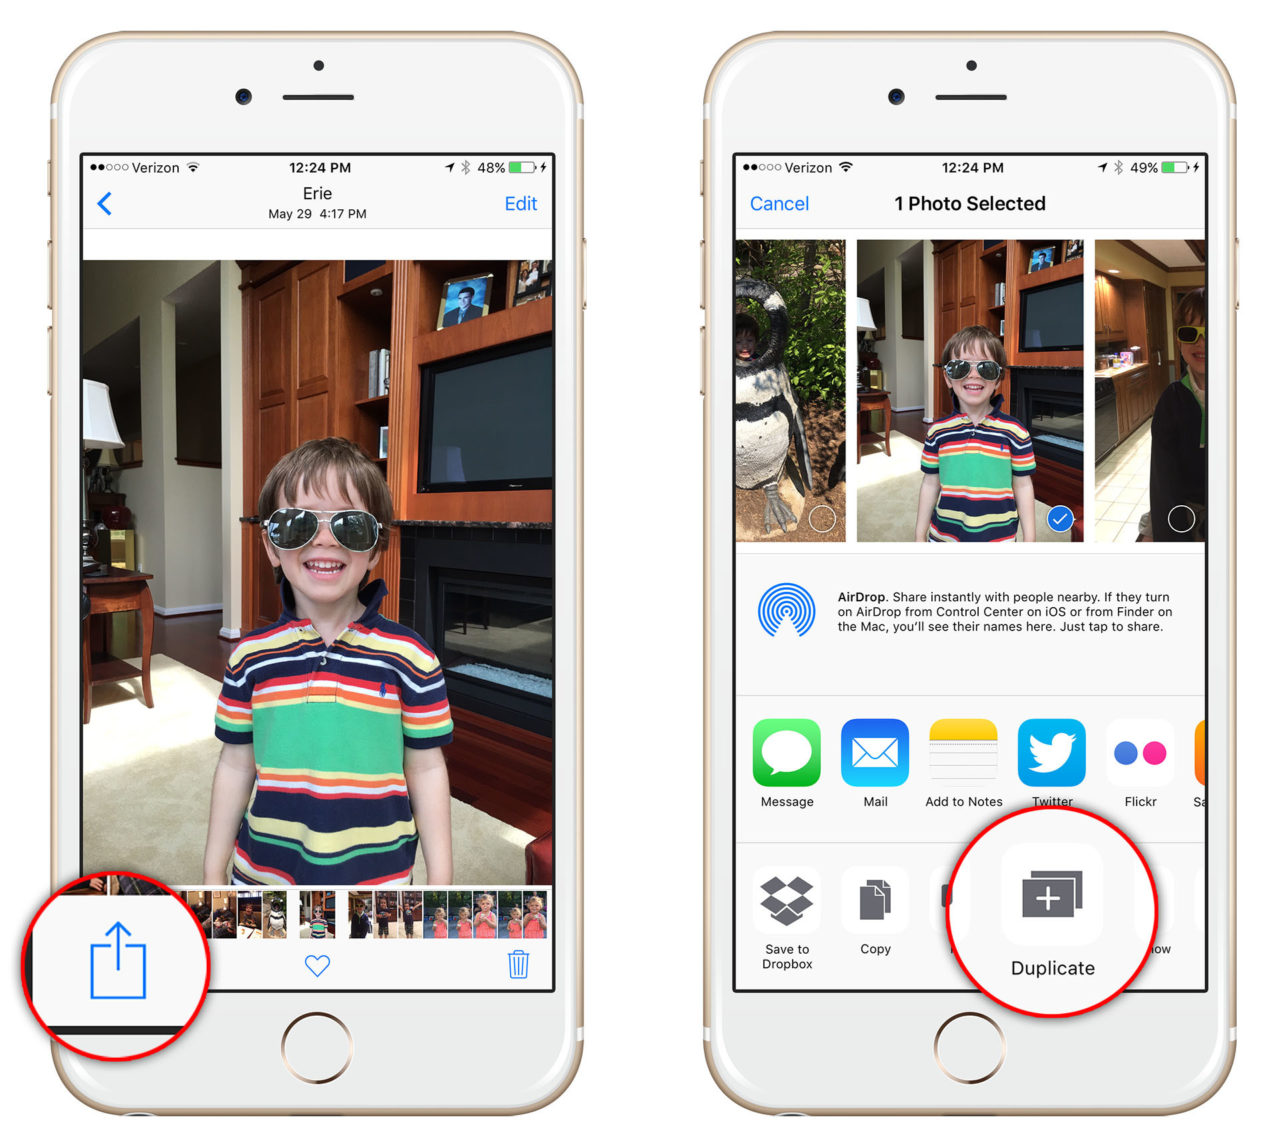 How to Make Duplicate Copies of Your Photos and Videos in iOS